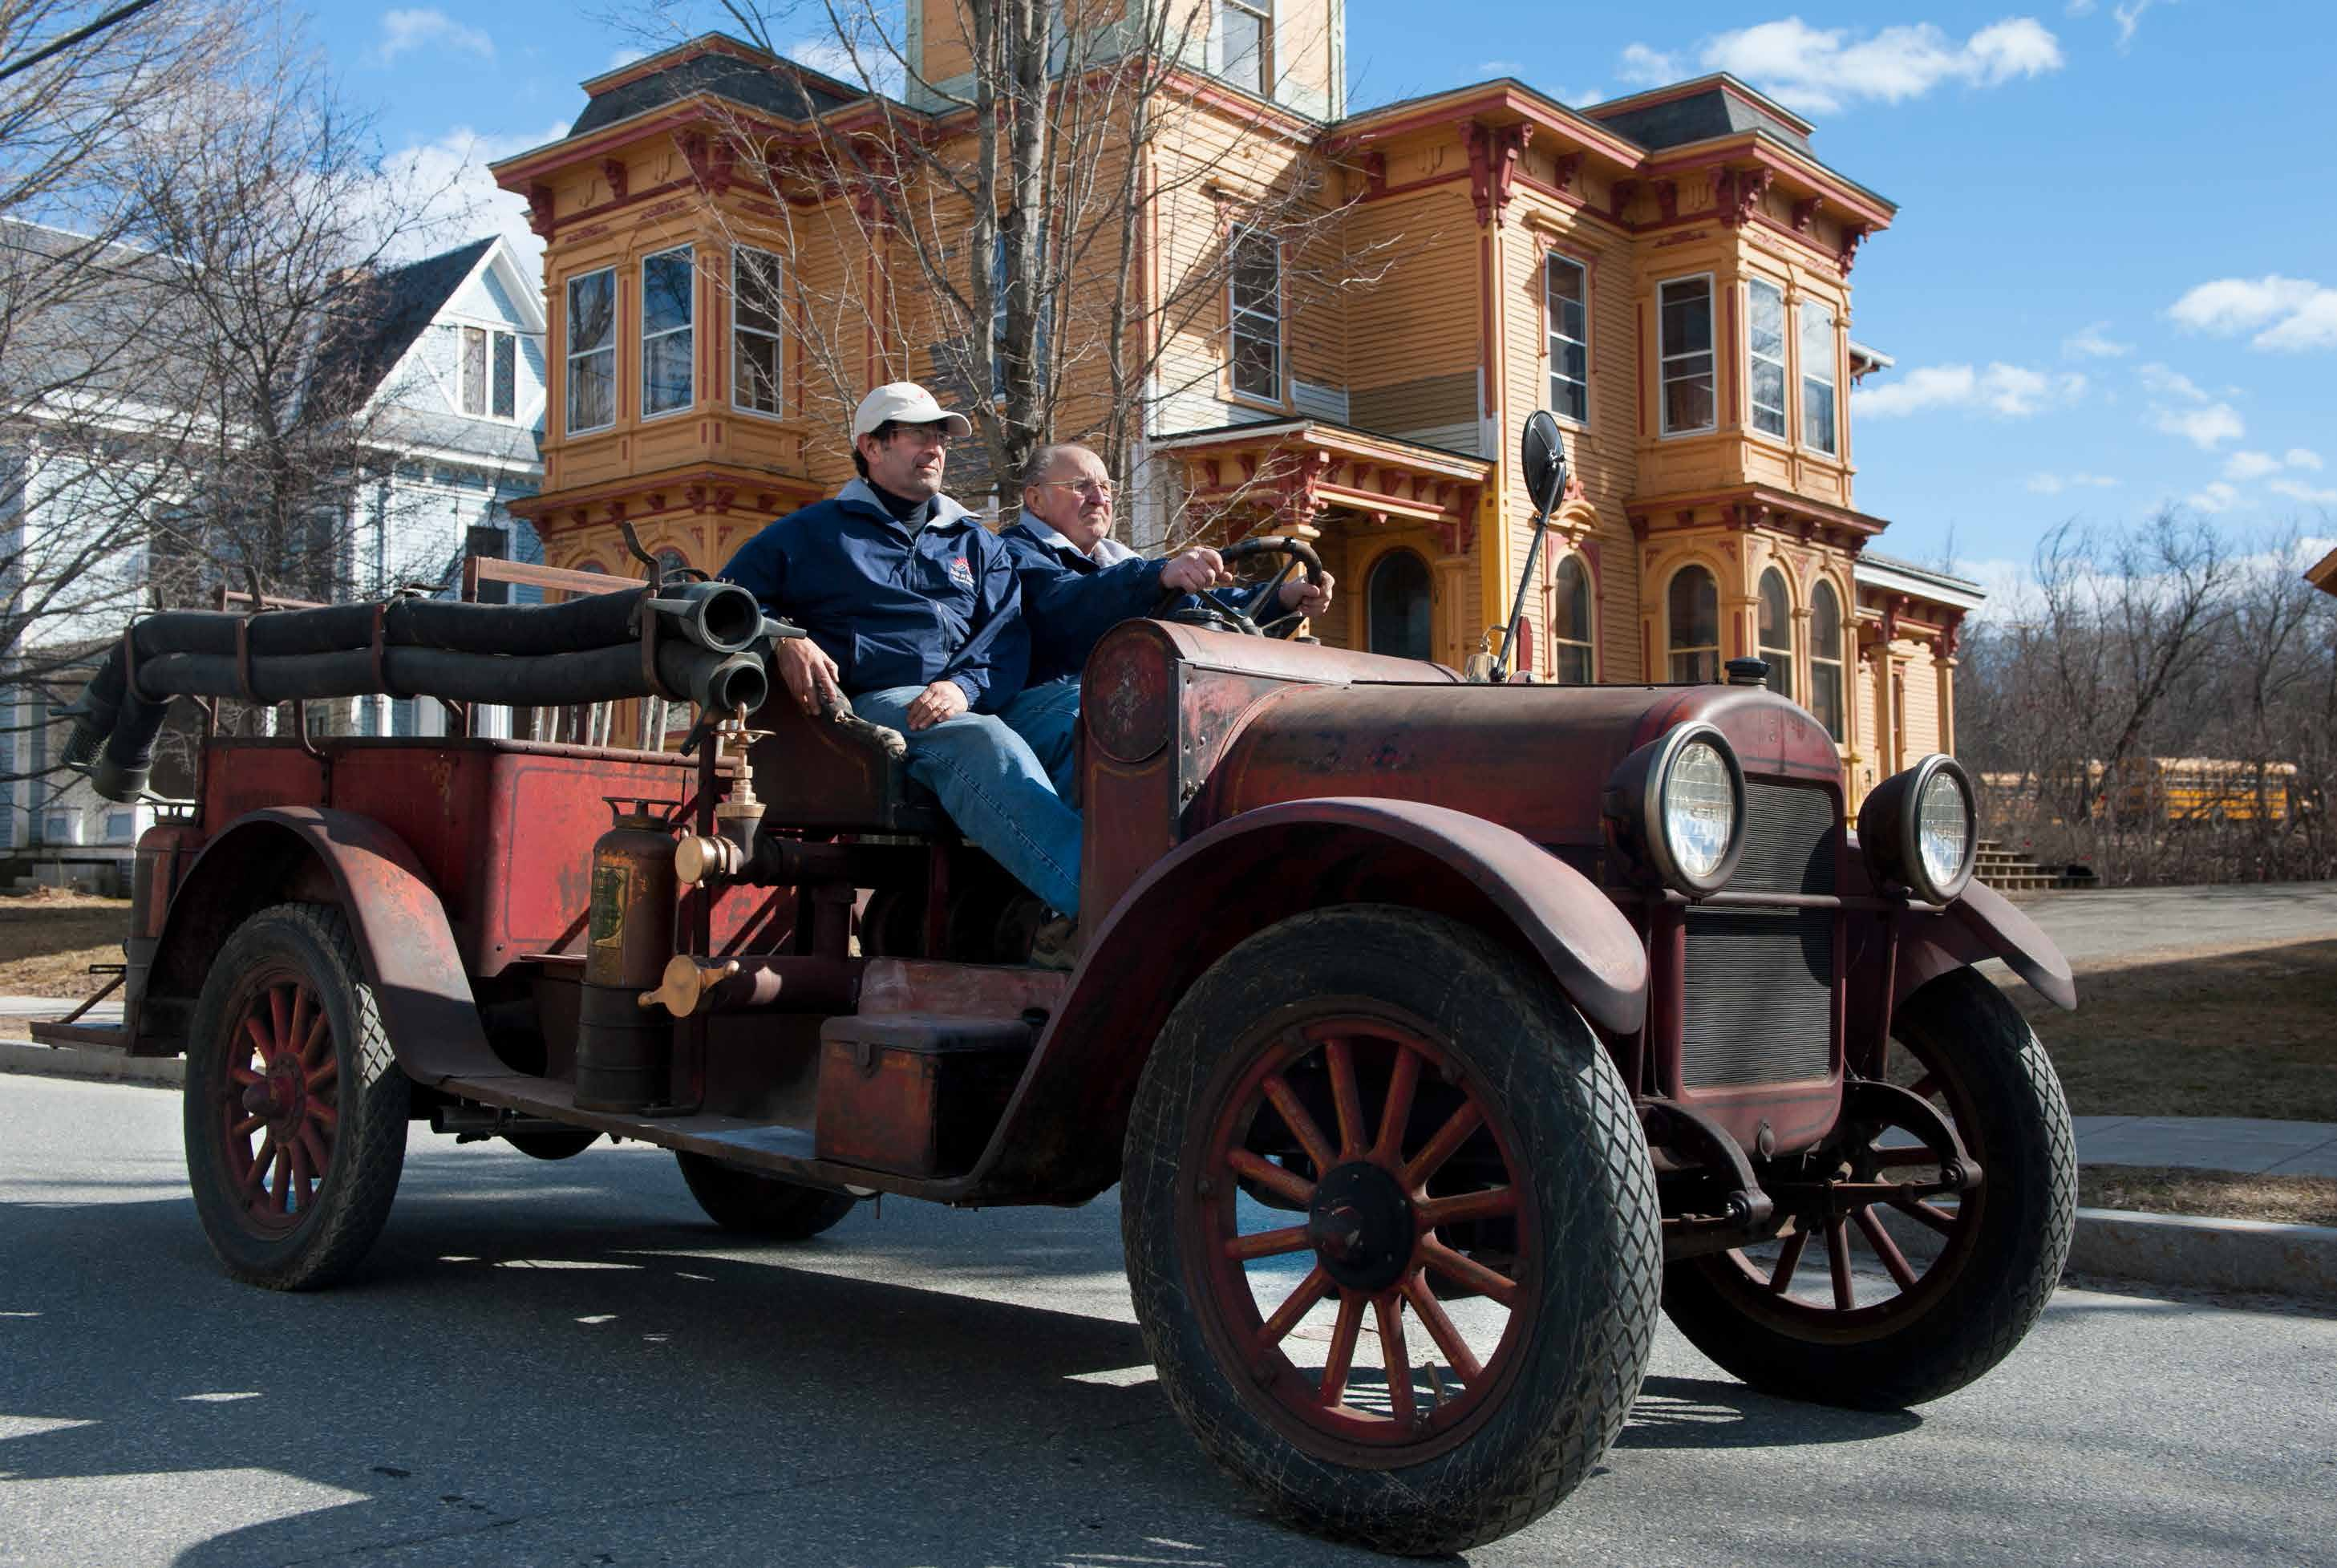 Historic Fire Truck Finds Its Way Home | The Herald of Randolph